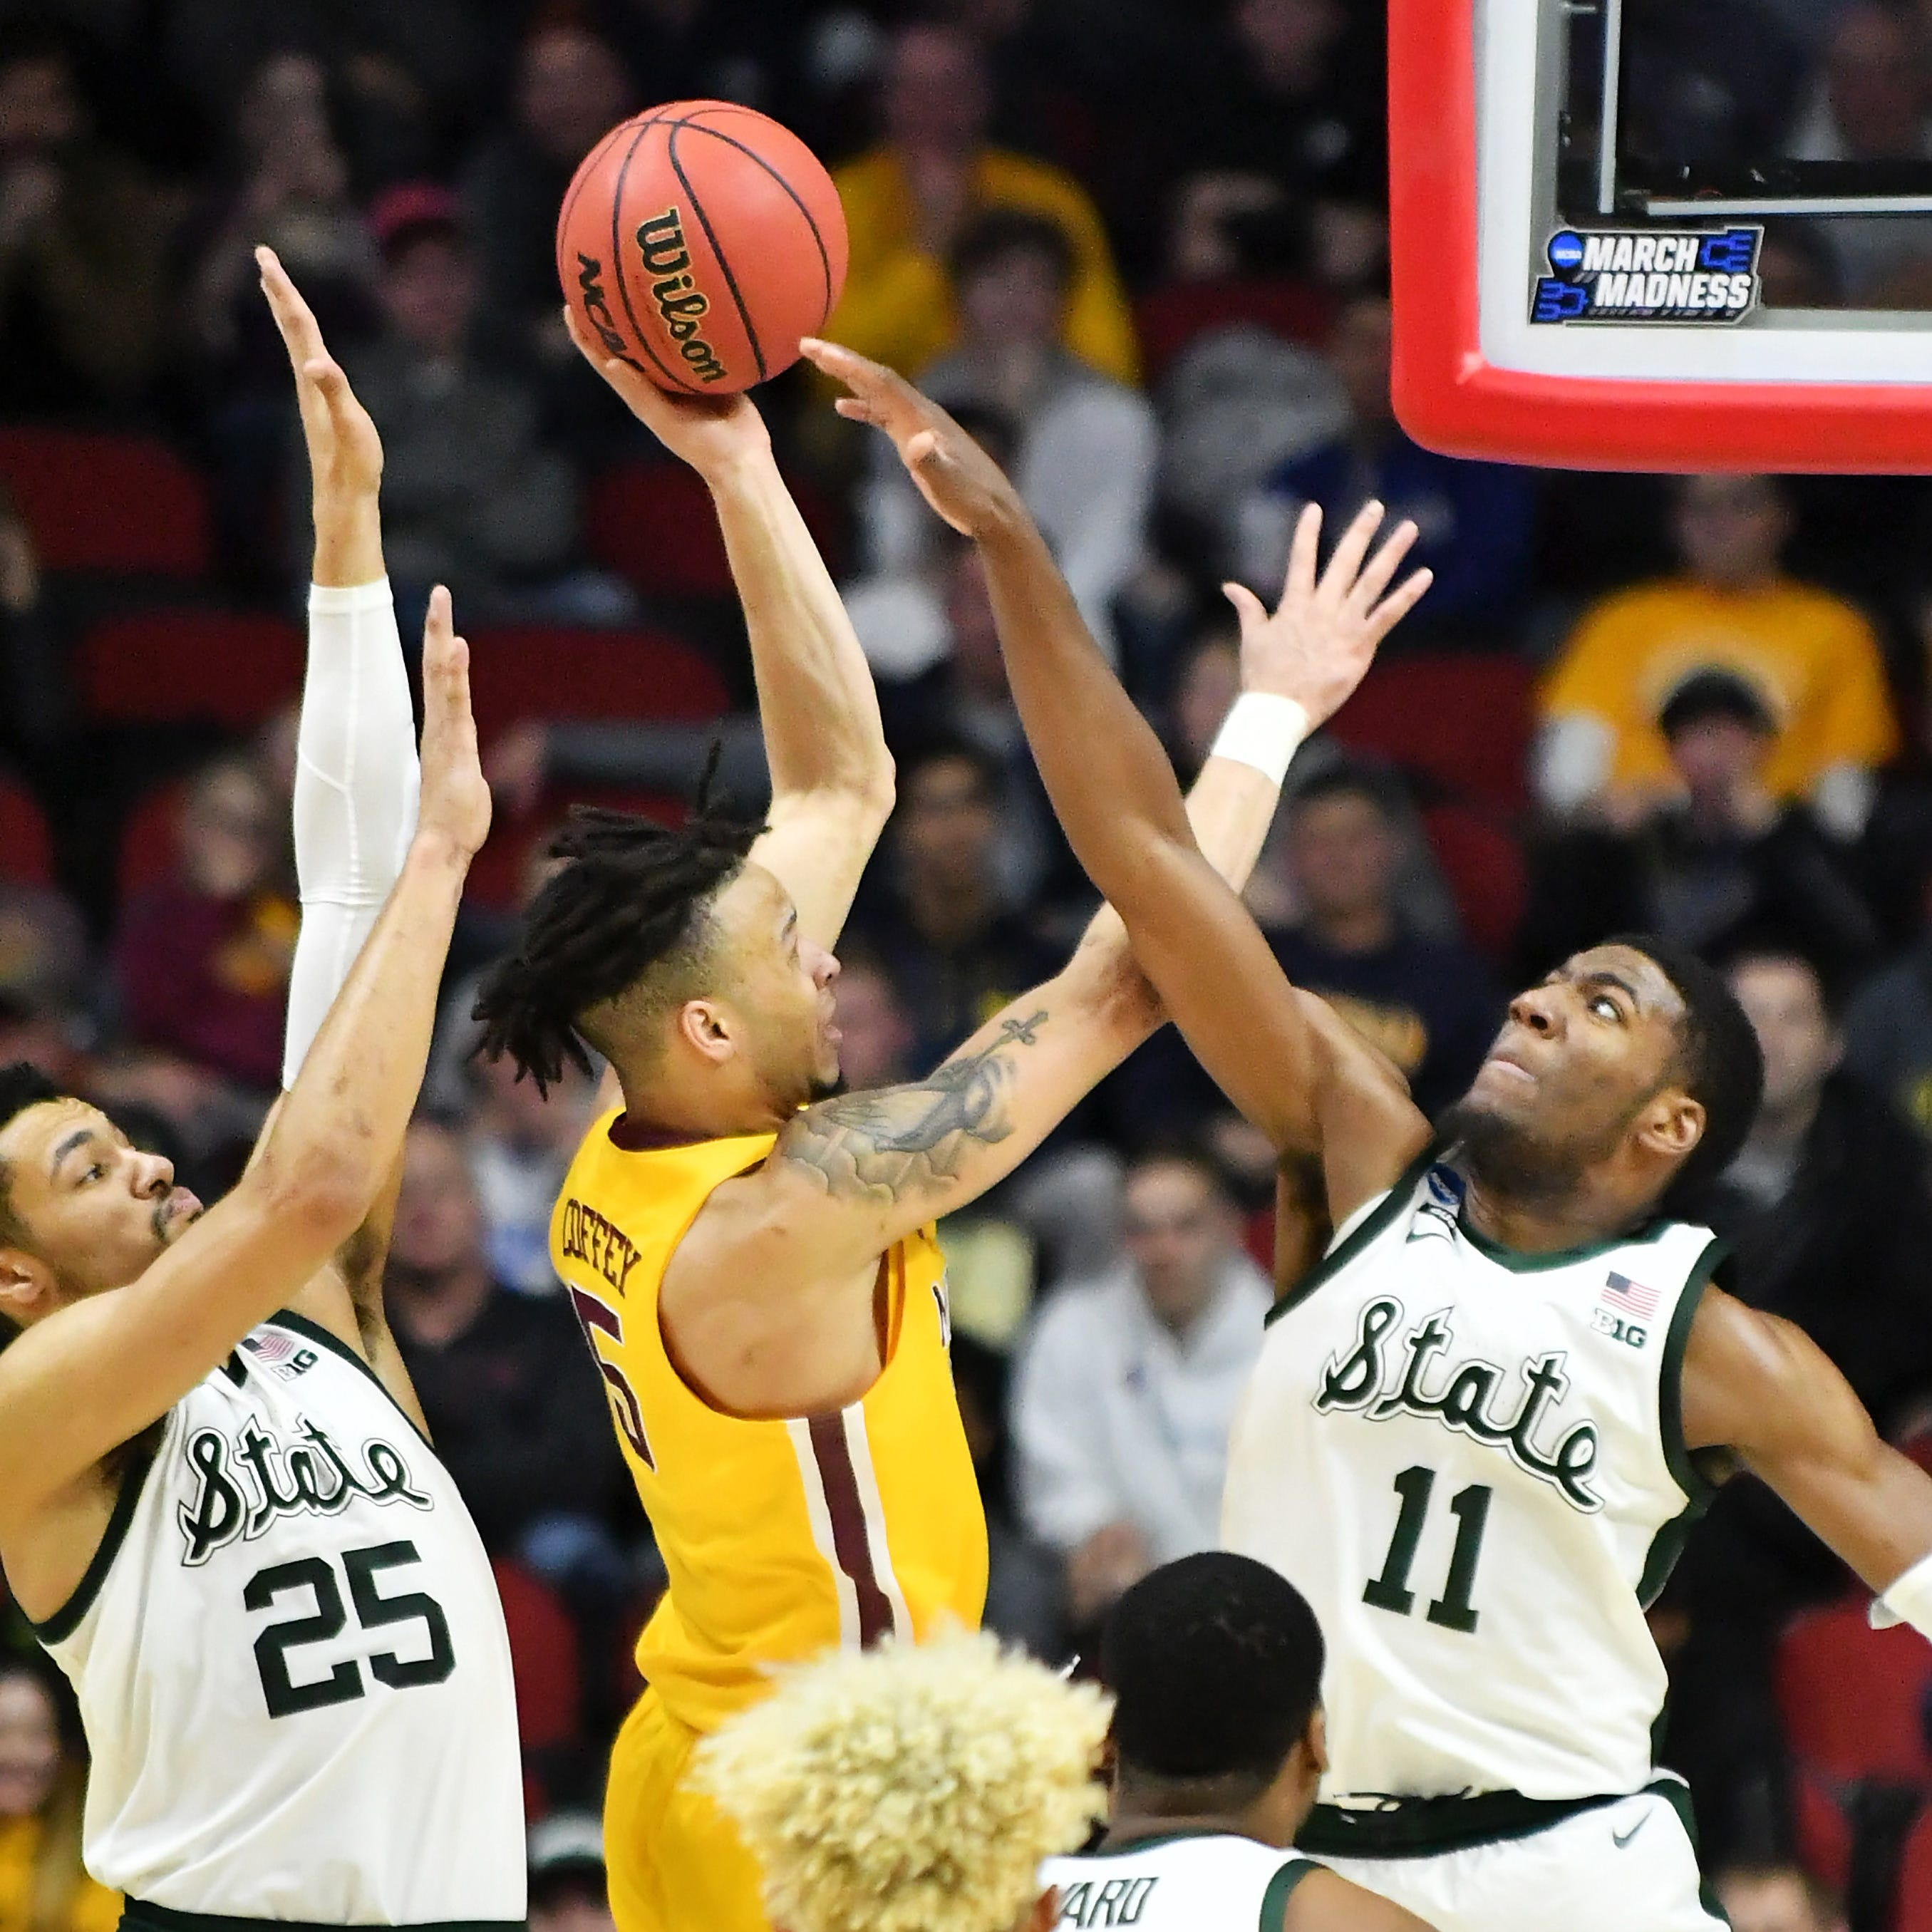 Defensive effort by Henry and McQuaid helps Spartans stifle Gophers